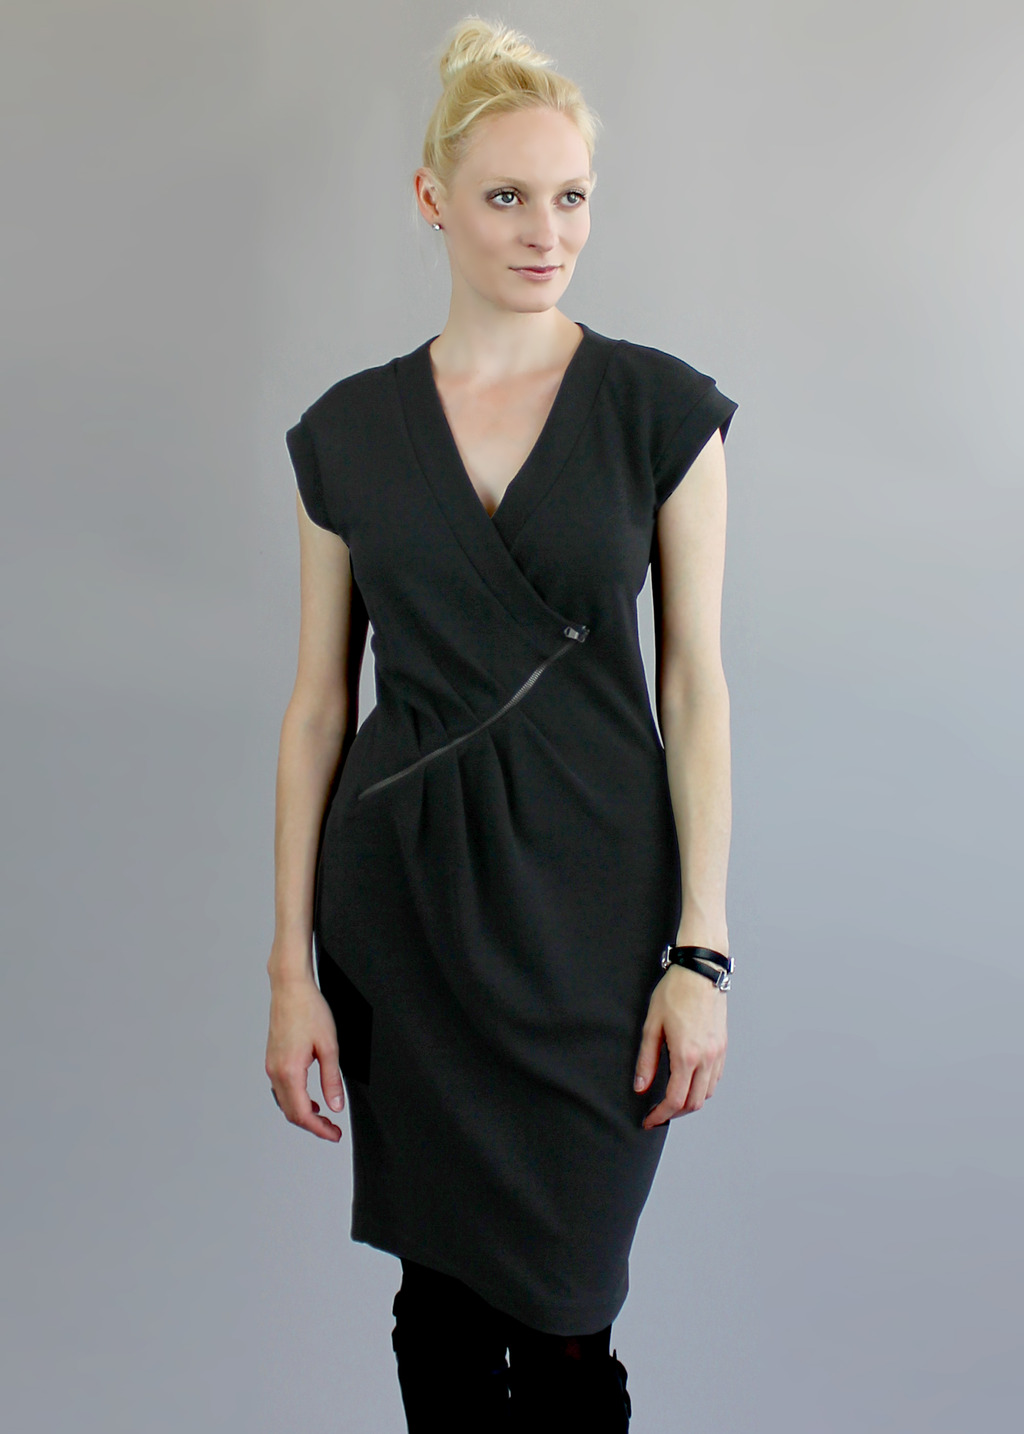 Black Finsbury Dress - style: faux wrap/wrap; neckline: low v-neck; sleeve style: capped; pattern: plain; predominant colour: black; occasions: casual, creative work; length: on the knee; fit: body skimming; fibres: polyester/polyamide - mix; sleeve length: short sleeve; texture group: crepes; pattern type: fabric; season: a/w 2013